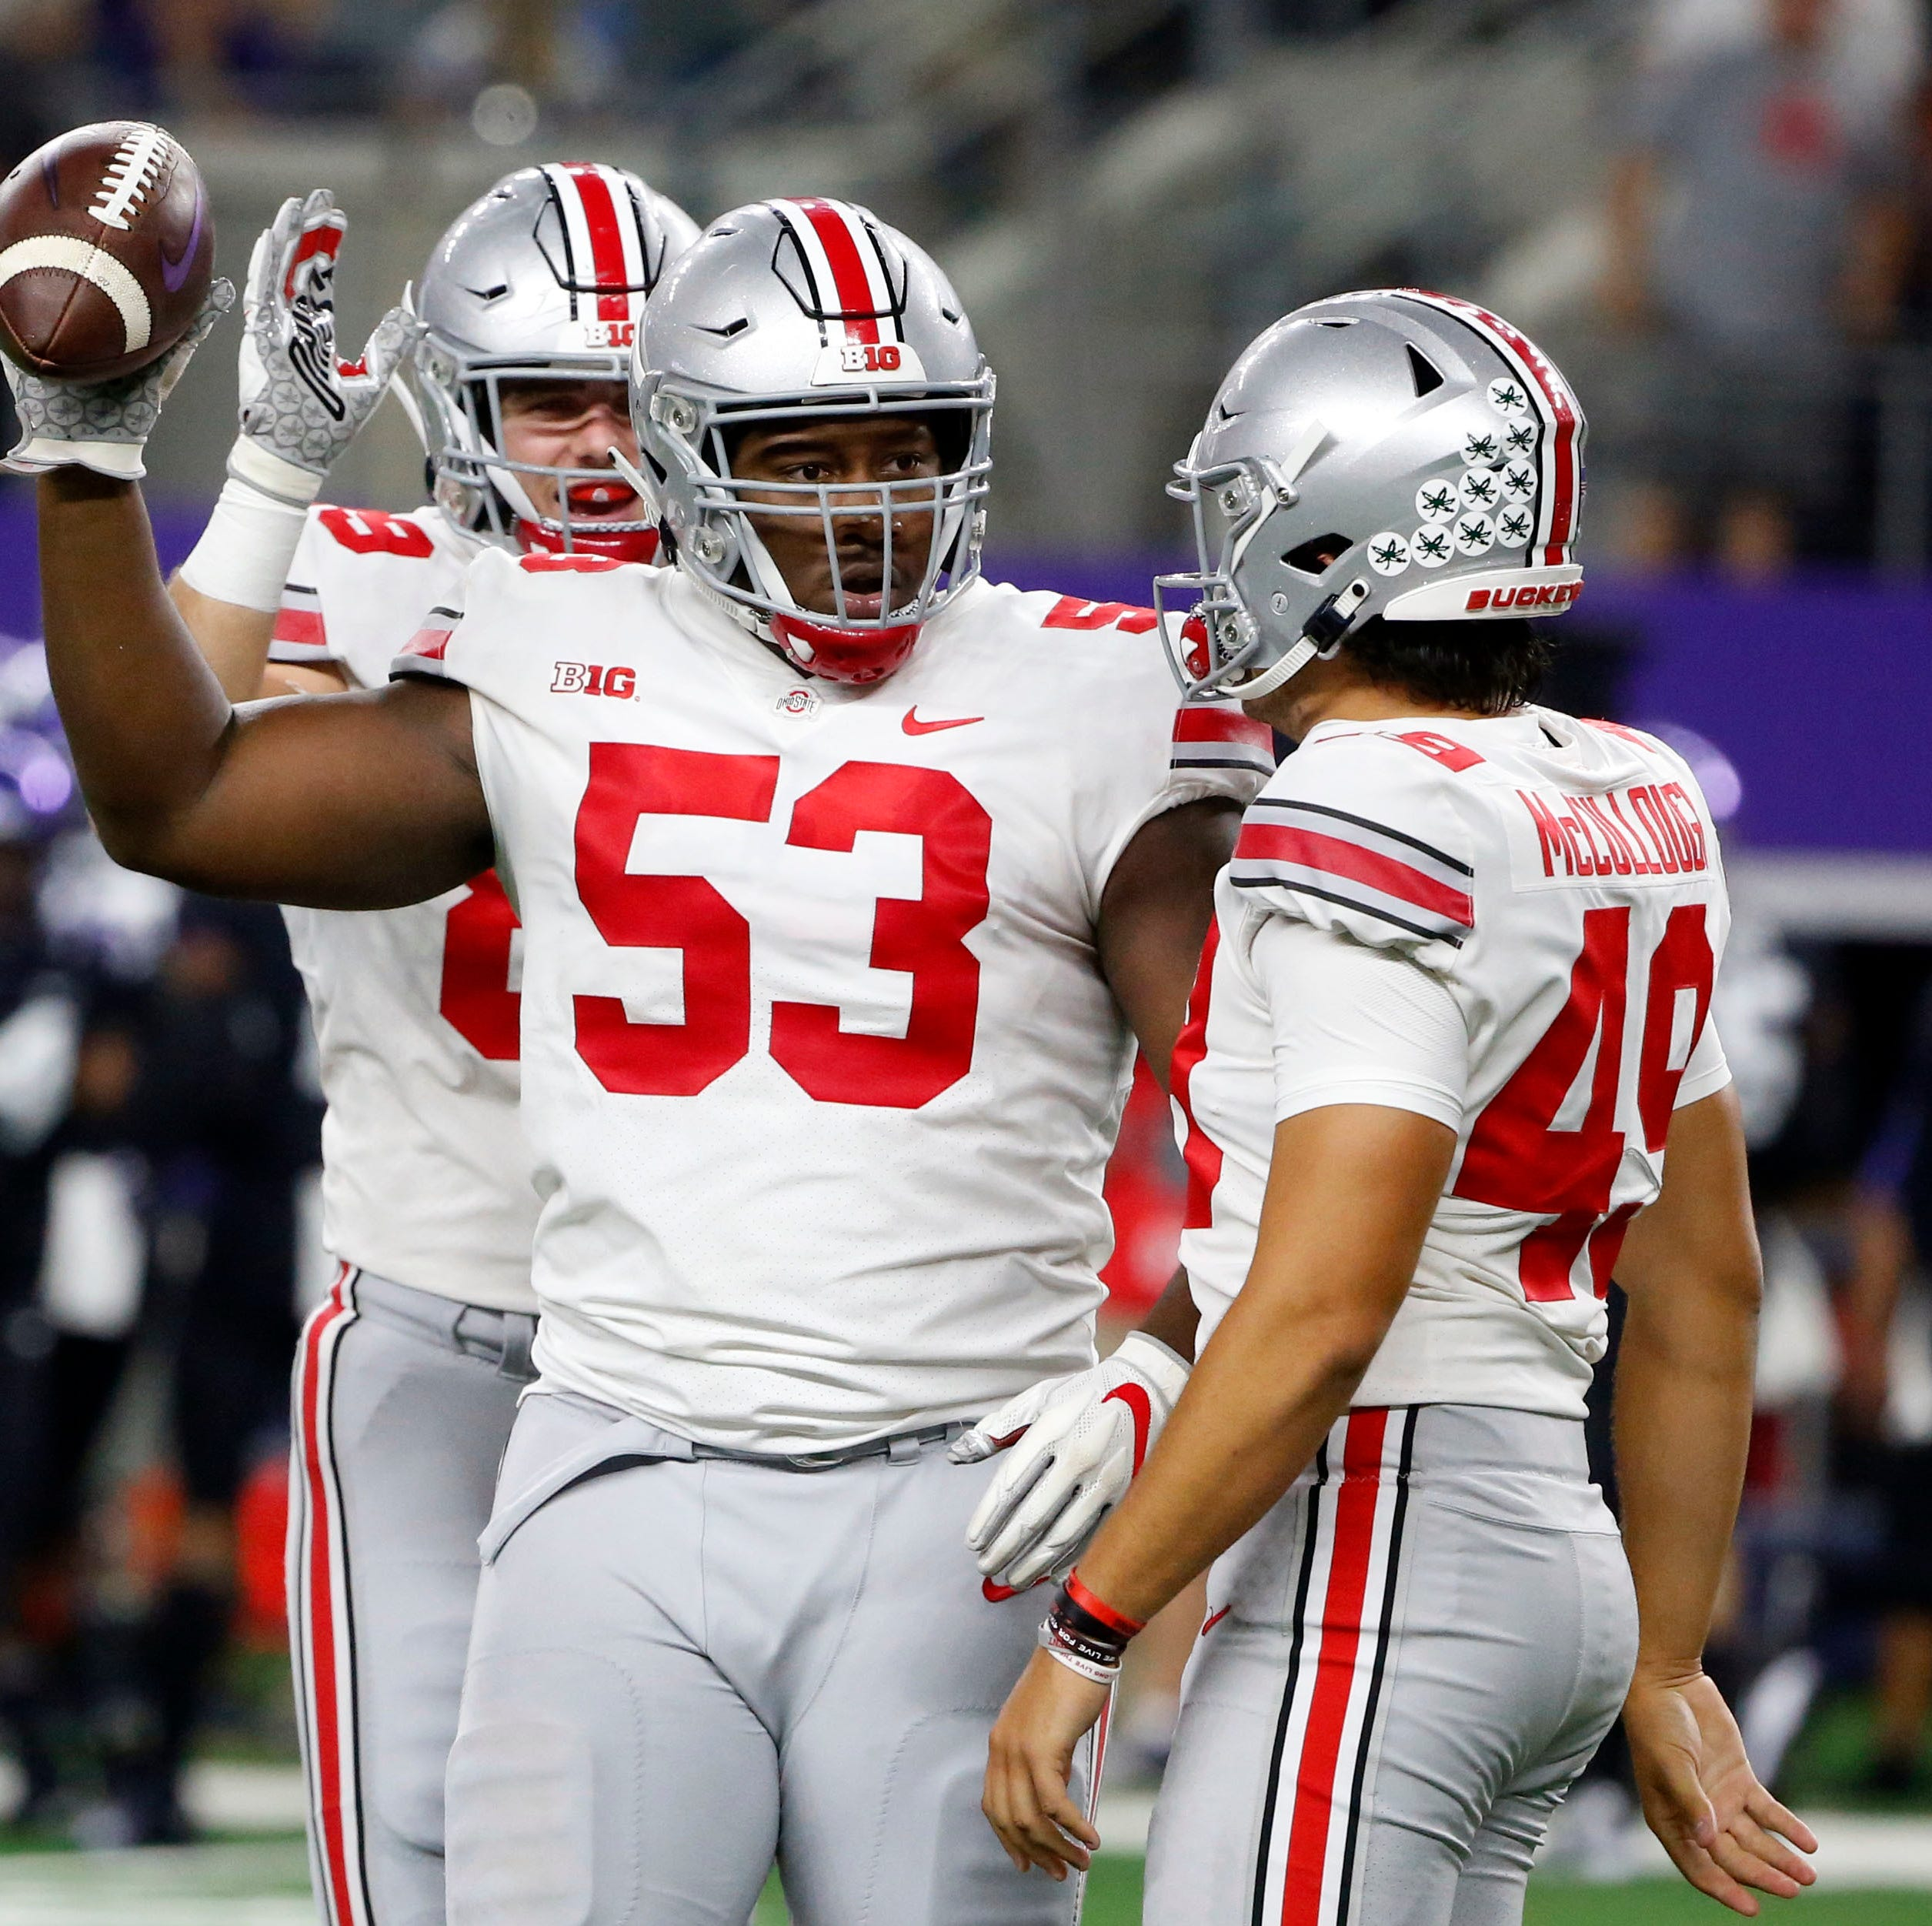 Big win shows Buckeyes have Bosa's back